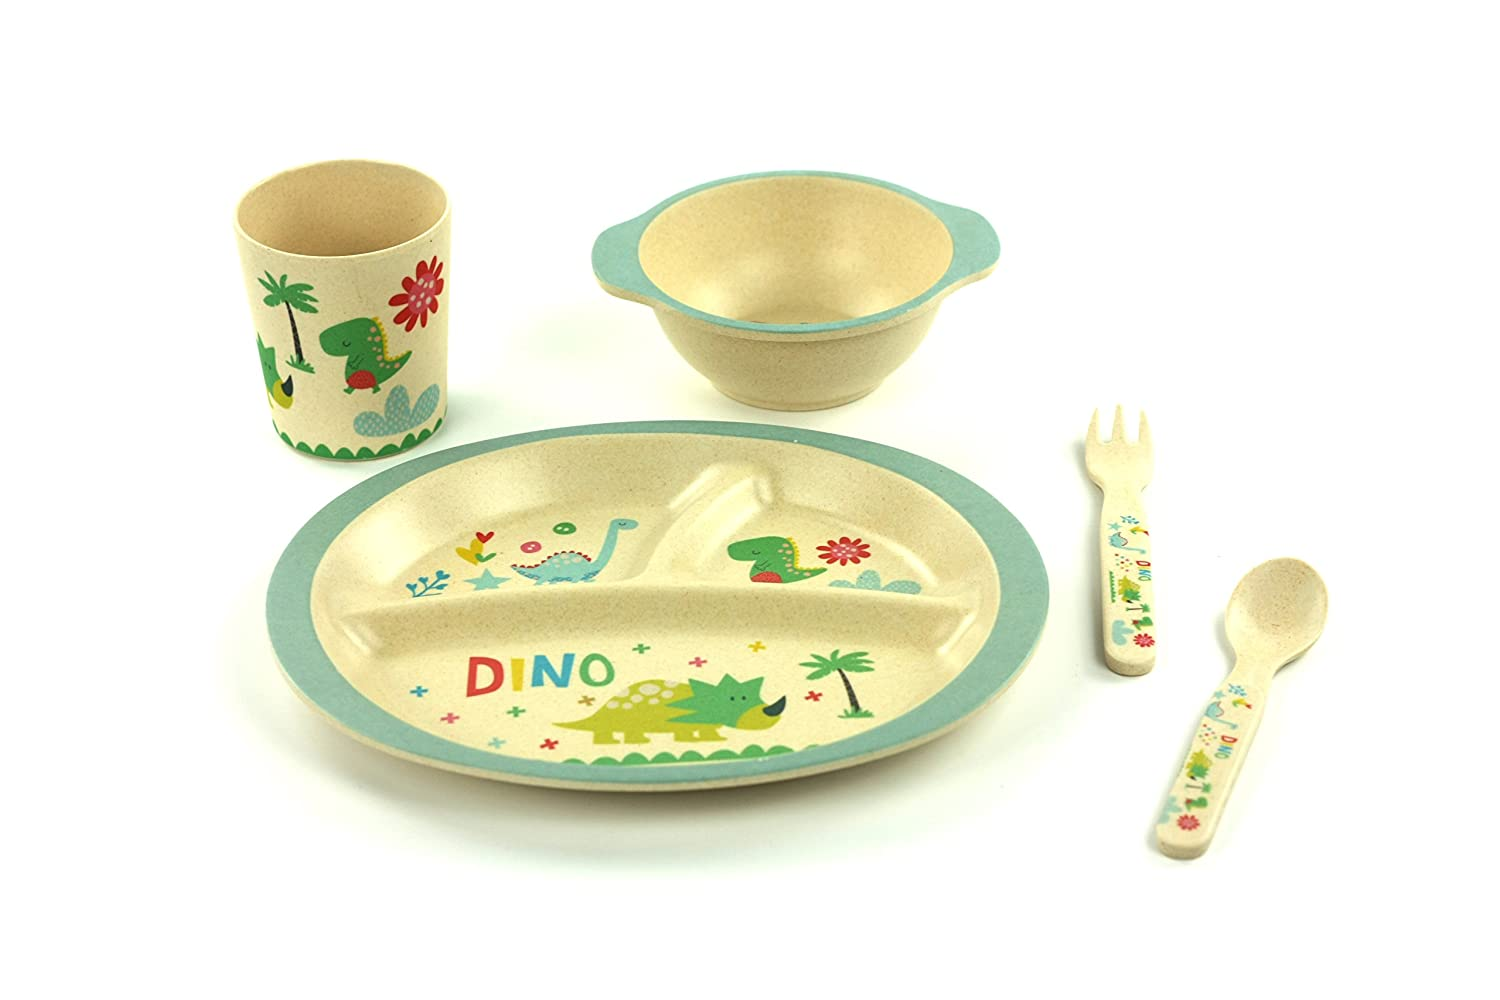 Amazon.com  Kids Dinnerware Set of 5 Piece - Toddler Bamboo Bowl Children Plate Cup Toddler Fork u0026 Spoon BPA Free Dinosaur Plates for Baby Shower Gift ...  sc 1 st  Amazon.com & Amazon.com : Kids Dinnerware Set of 5 Piece - Toddler Bamboo Bowl ...